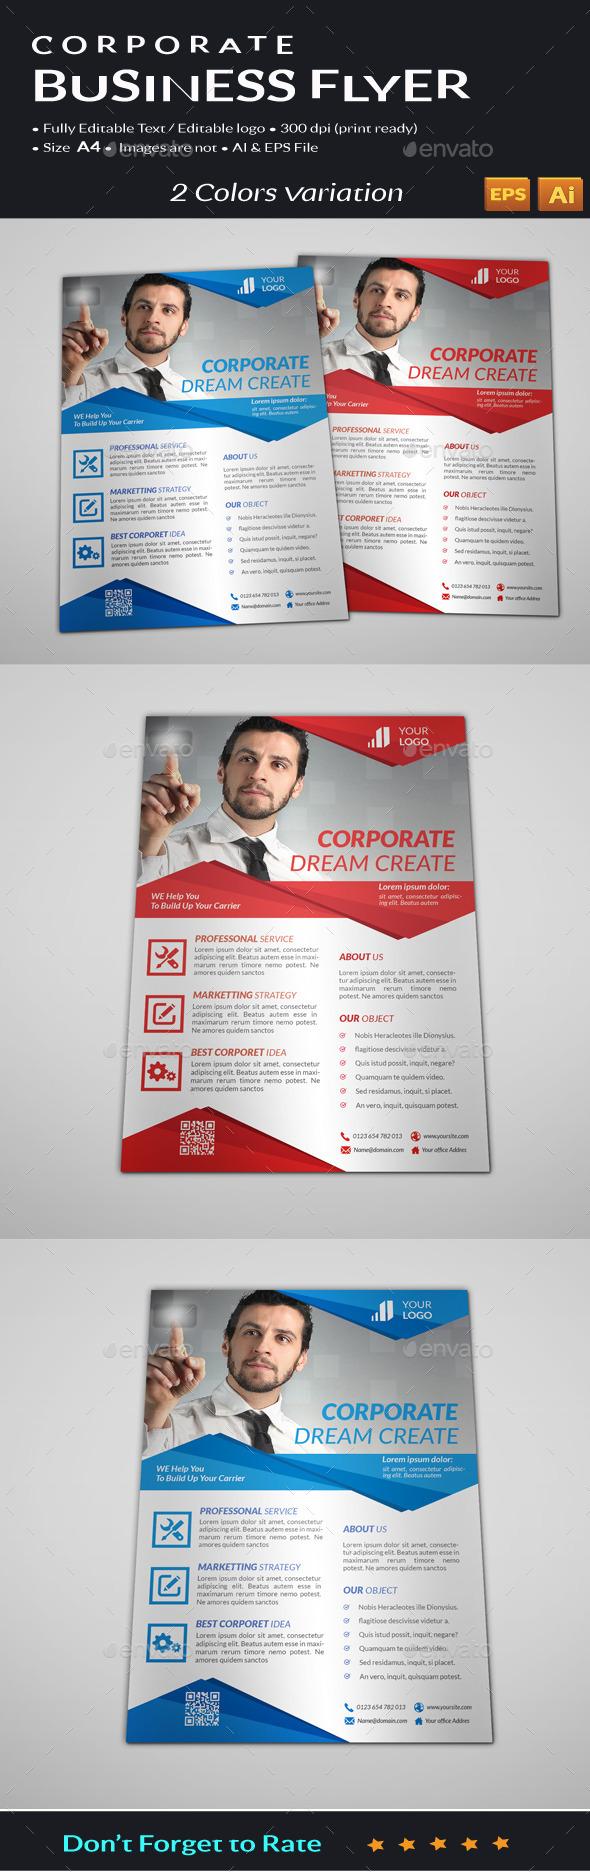 GraphicRiver Corporate Business Flyer 11202931